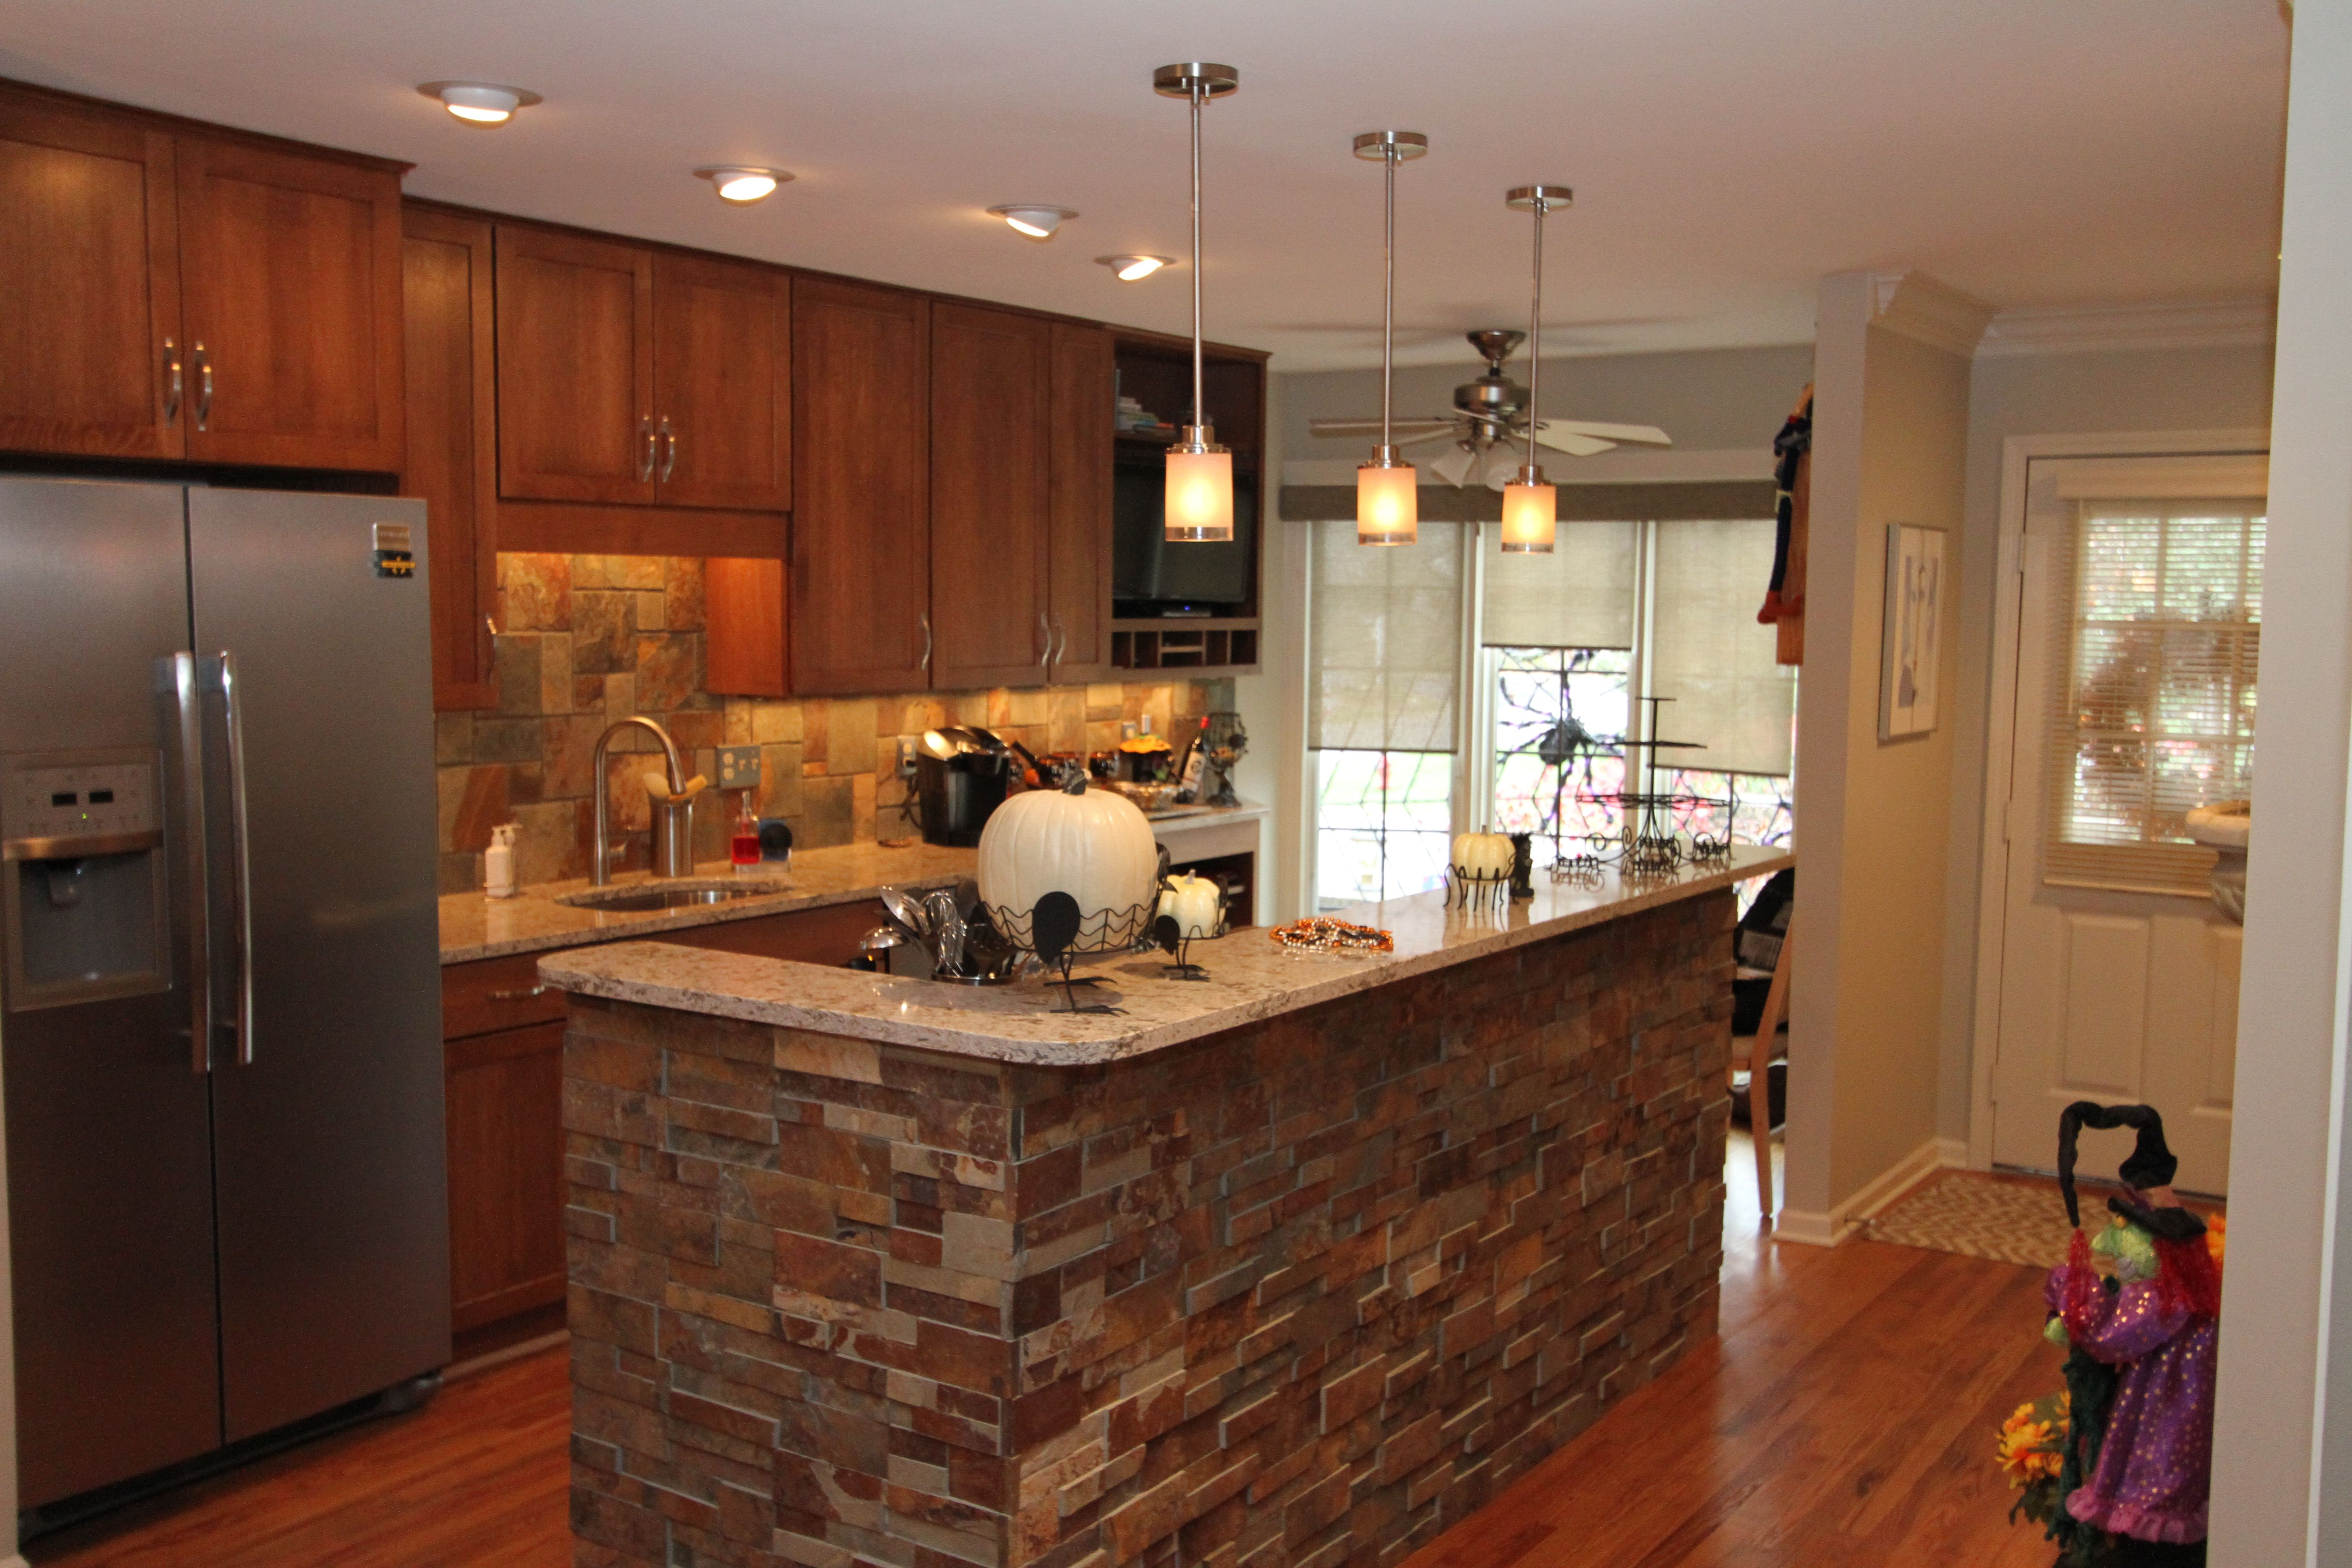 Manufactured Stone Countertops : Open kitchen with cultured stone backsplash accent wall